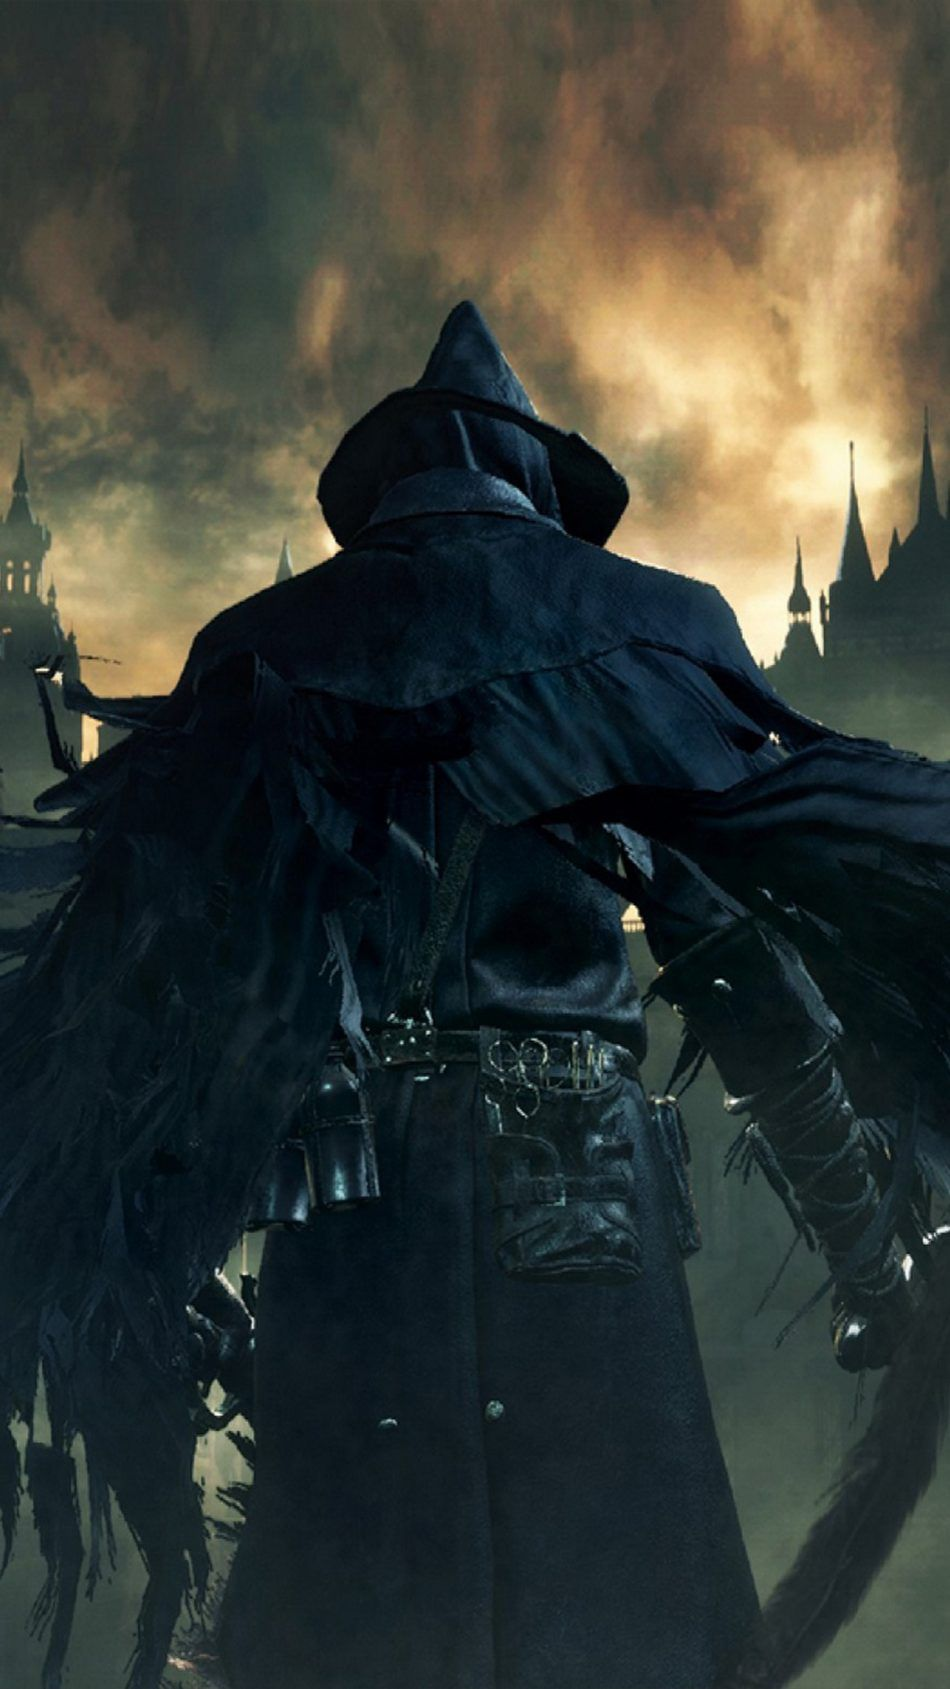 Bloodborne Video Game 4k Ultra Hd Mobile Wallpaper Gaming Wallpapers 4k Gaming Wallpaper 4k Wallpaper For Mobile